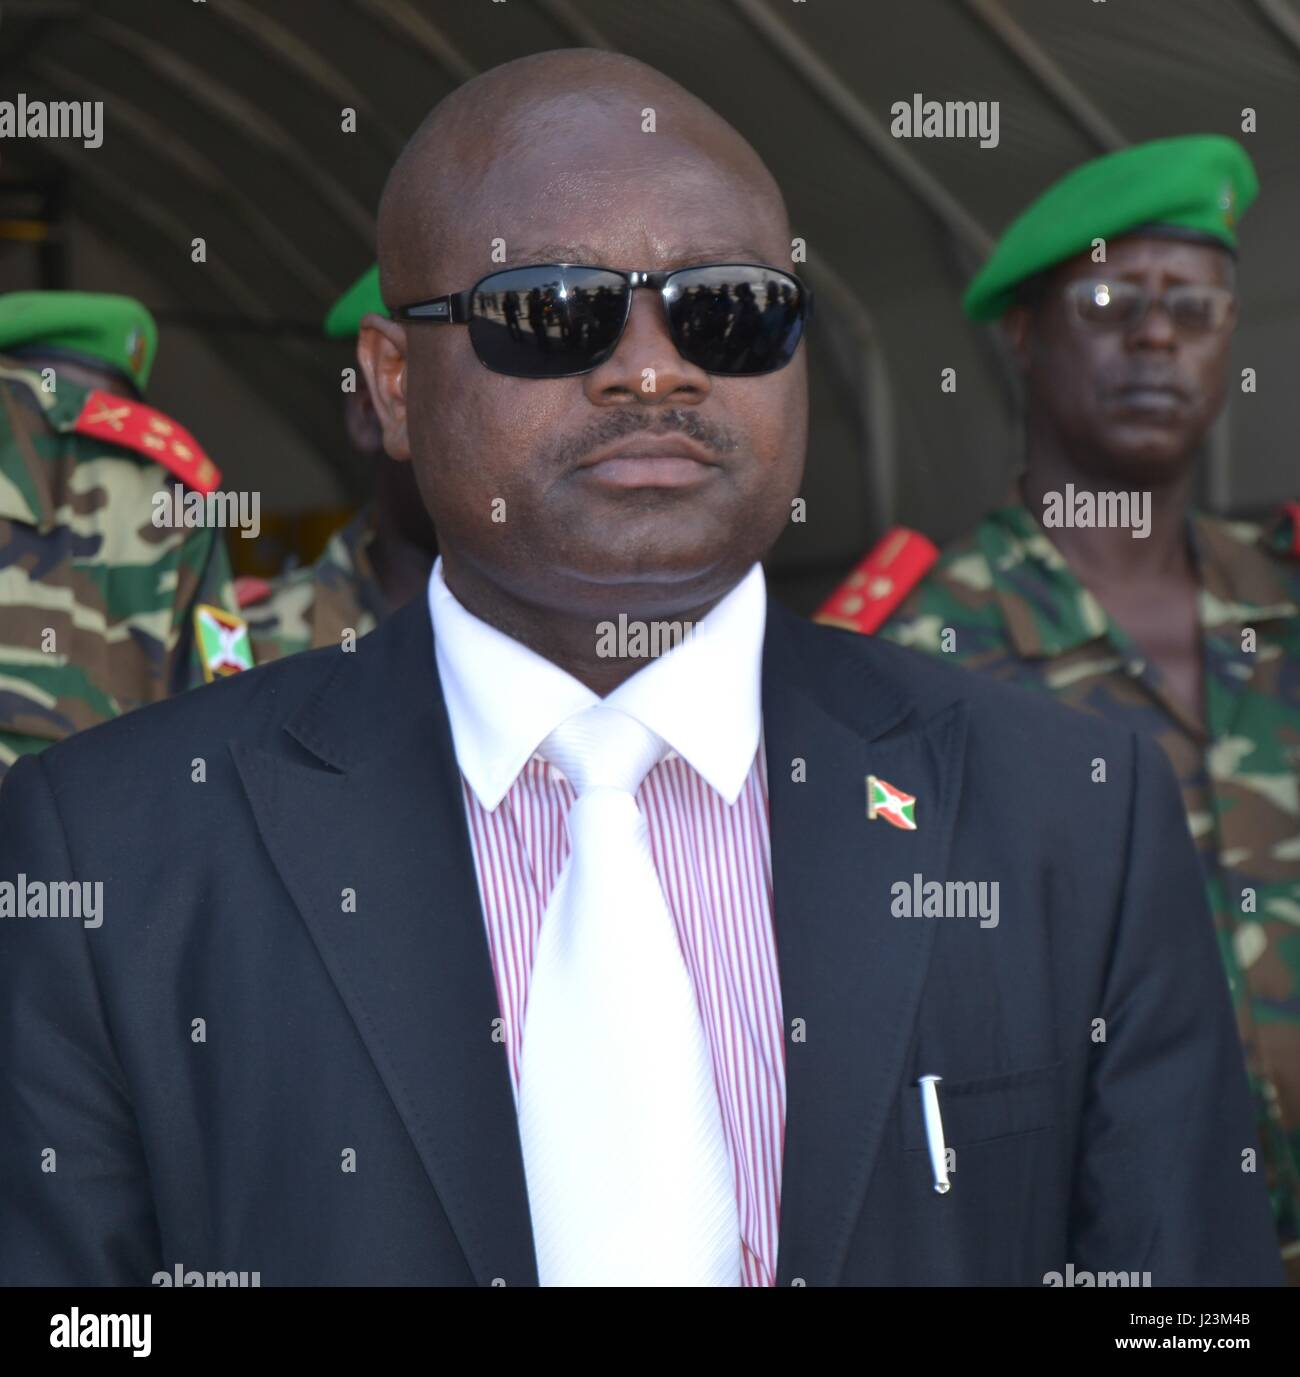 Somalian African Union Mission Force Commander Silas Ntiguriwa arrives for a familiarization tour November 29, 2013 - Stock Image